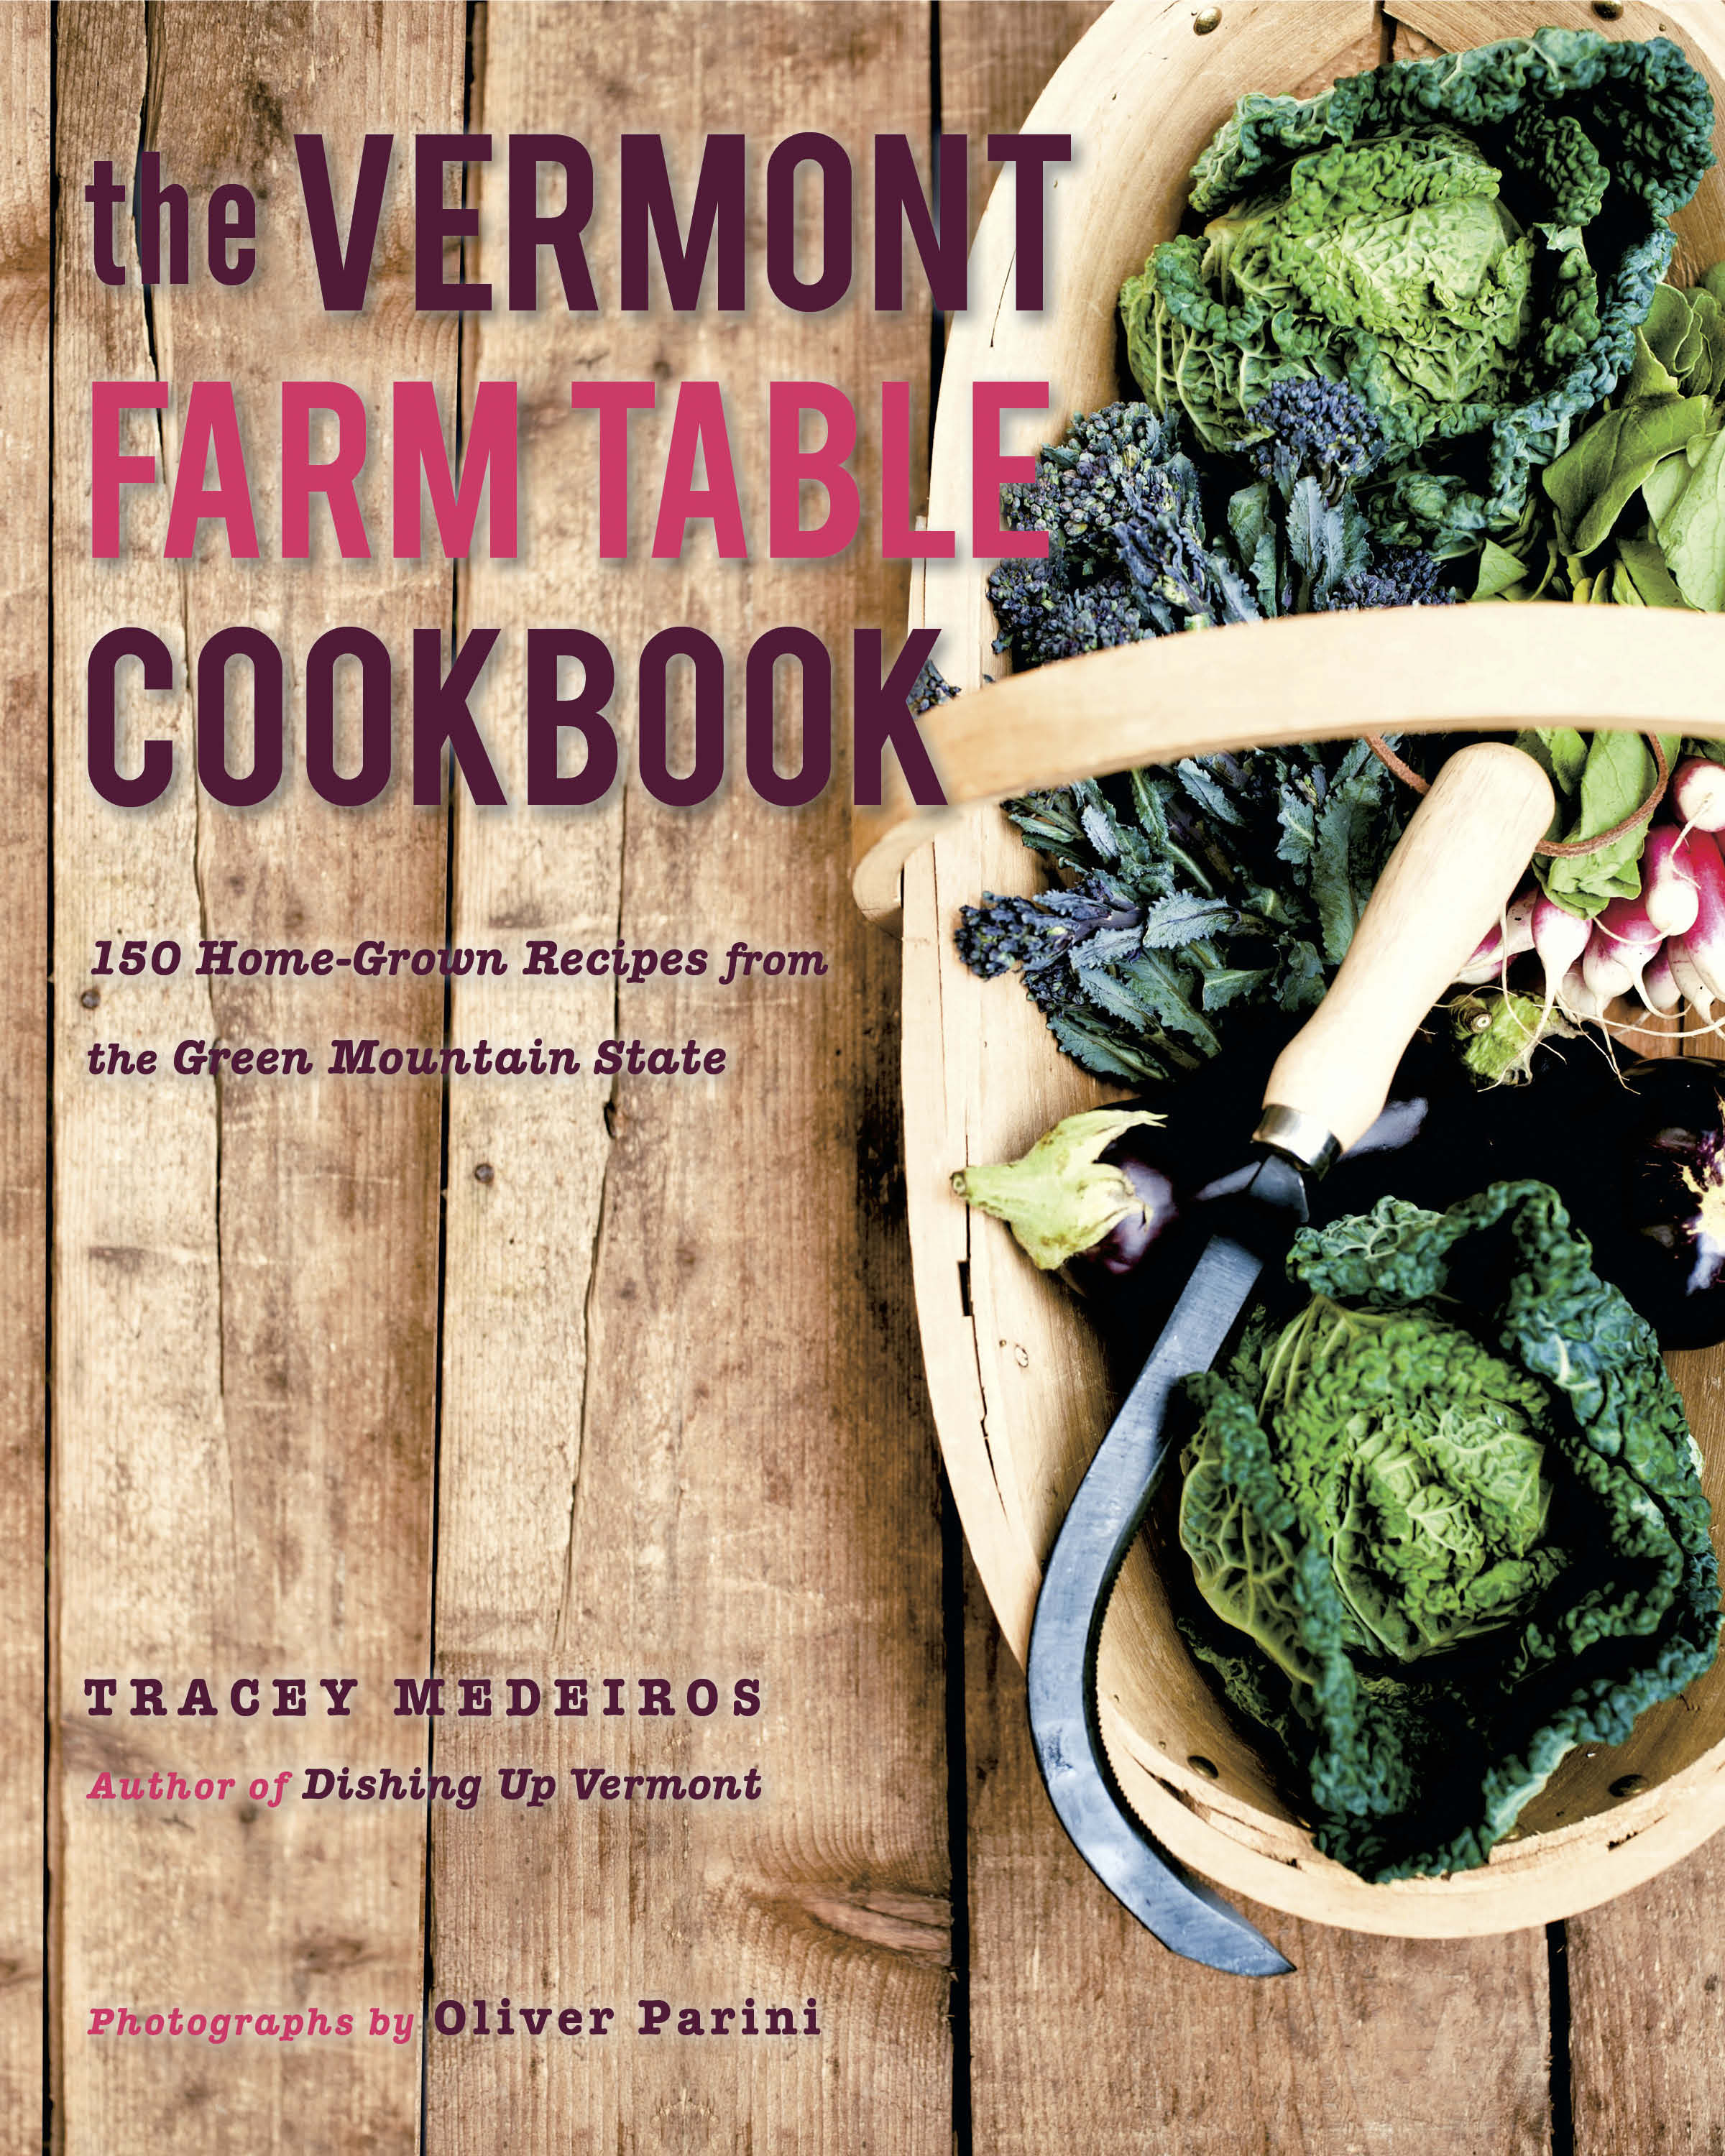 """The Vermont Farm Table Cookbook    Small, independent farms are the lifeblood of Vermont's agriculture, from the sweetcorn grower to the dairy goat farmer to the cheese maker whose locally sourced goat milk chevre becomes the heart of a new dish by a chef in Montpelier. While this farm-to-table cycle may be a phenomenon just hitting its stride in the United States, it has long been away of life in Vermont, part of the ethos that Vermonters use to define themselves. As such, Vermont exemplifies a standard of small-scale, community-minded, unadulterated agriculture that has become a national model.  When Tracey Medeiros wrote Dishing Up Vermont in 2008, she wanted to showcase the chefs and restaurateurs who were dazzling taste buds with their fresh, whole-food creations. With The Vermont Farm Table Cookbook, Medeiros has traversed the Green Mountain State once again, in search of not only those celebrated chefs but the hard-working farmers who provide them with their fresh and wholesome ingredients as well. Collecting their stories and some 125 of their delicious, rustic-yet-refined, Vermont inspired recipes, Medeiros presents an irresistible gastronomic portrait of this singular state.  Classics like Vermont Cheddar Soup and exciting innovations like Ramp Dumplings or Raisin Hell Pie will send you racing to your local farmers' market in search of the ingredients. And with dishes that shout """"only in Vermont,""""like Wood-Fired Blueberry Pizza or Beer-Battered Fiddleheads, no matter where you are you'll want to transform your tried-and-true menus into fresh and flavorful Vermont farm table suppers.   The Countryman Press, A division of W.W. Norton & Co., Inc.   500 Fifth Avenue New York, NY 10110   Tel: (212) 790-9410  Fax: (802) 457-1678    Link to Amazon.com"""